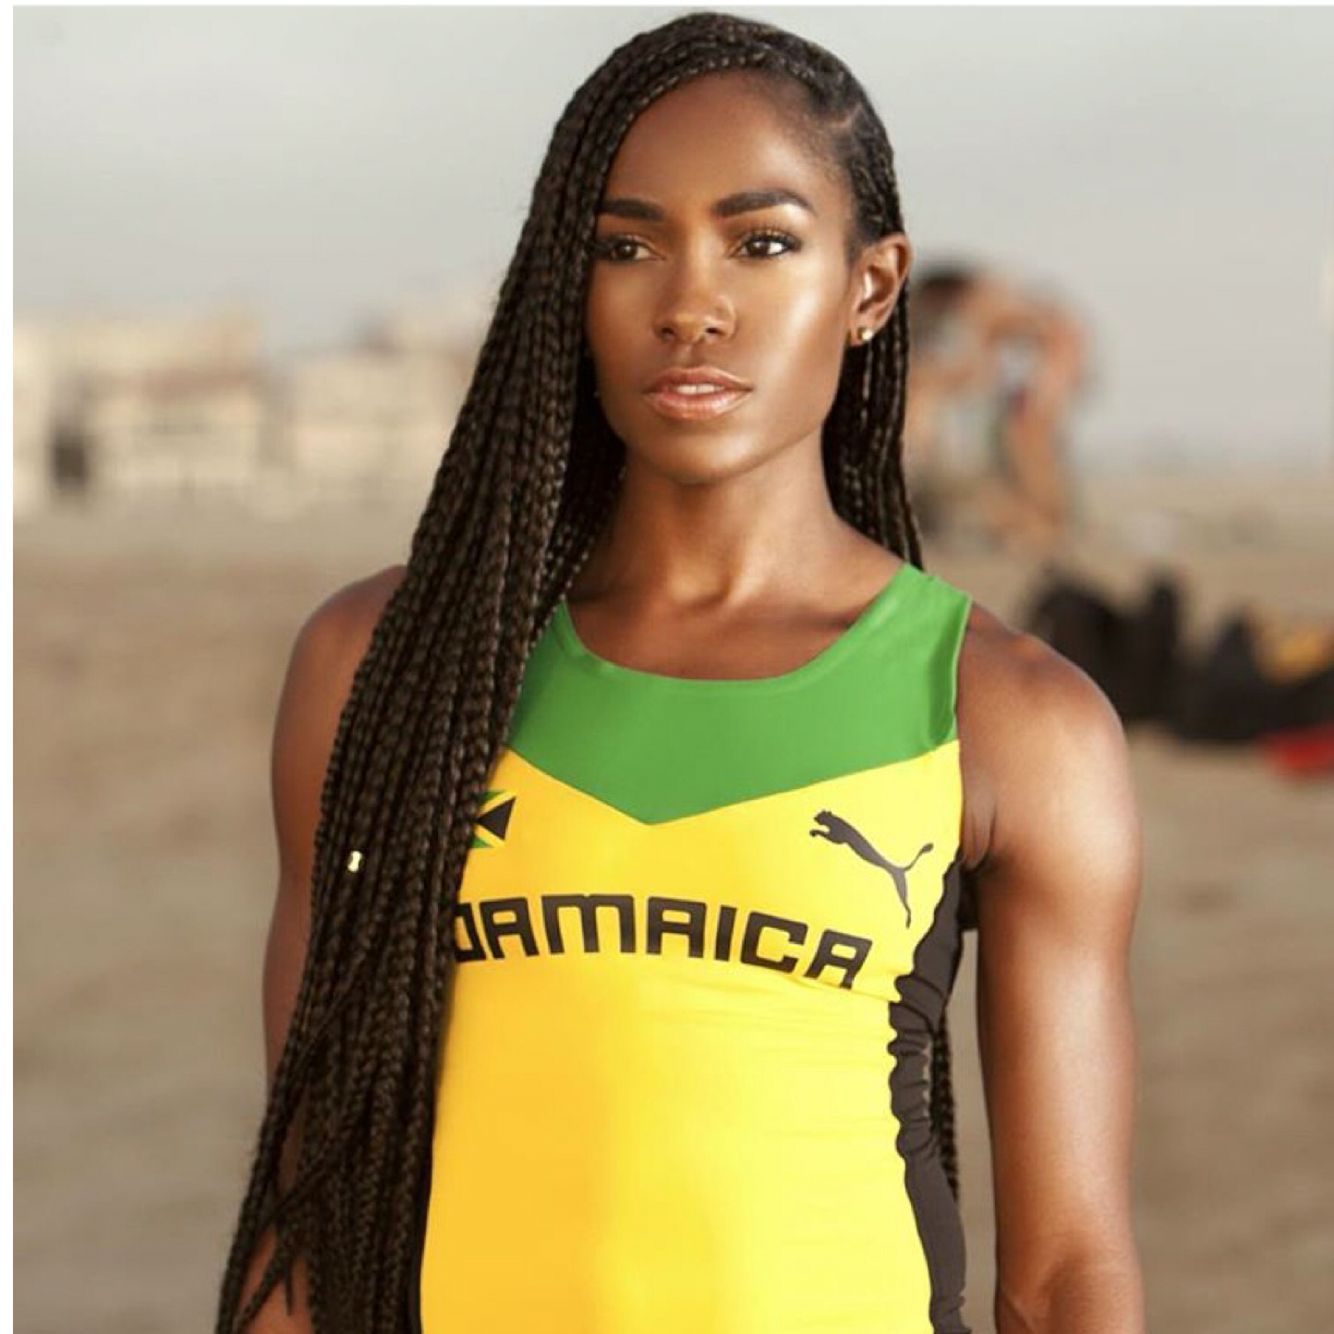 Jamaican track star Shevon Stoddart | Black women are BEAUTIFUL ...